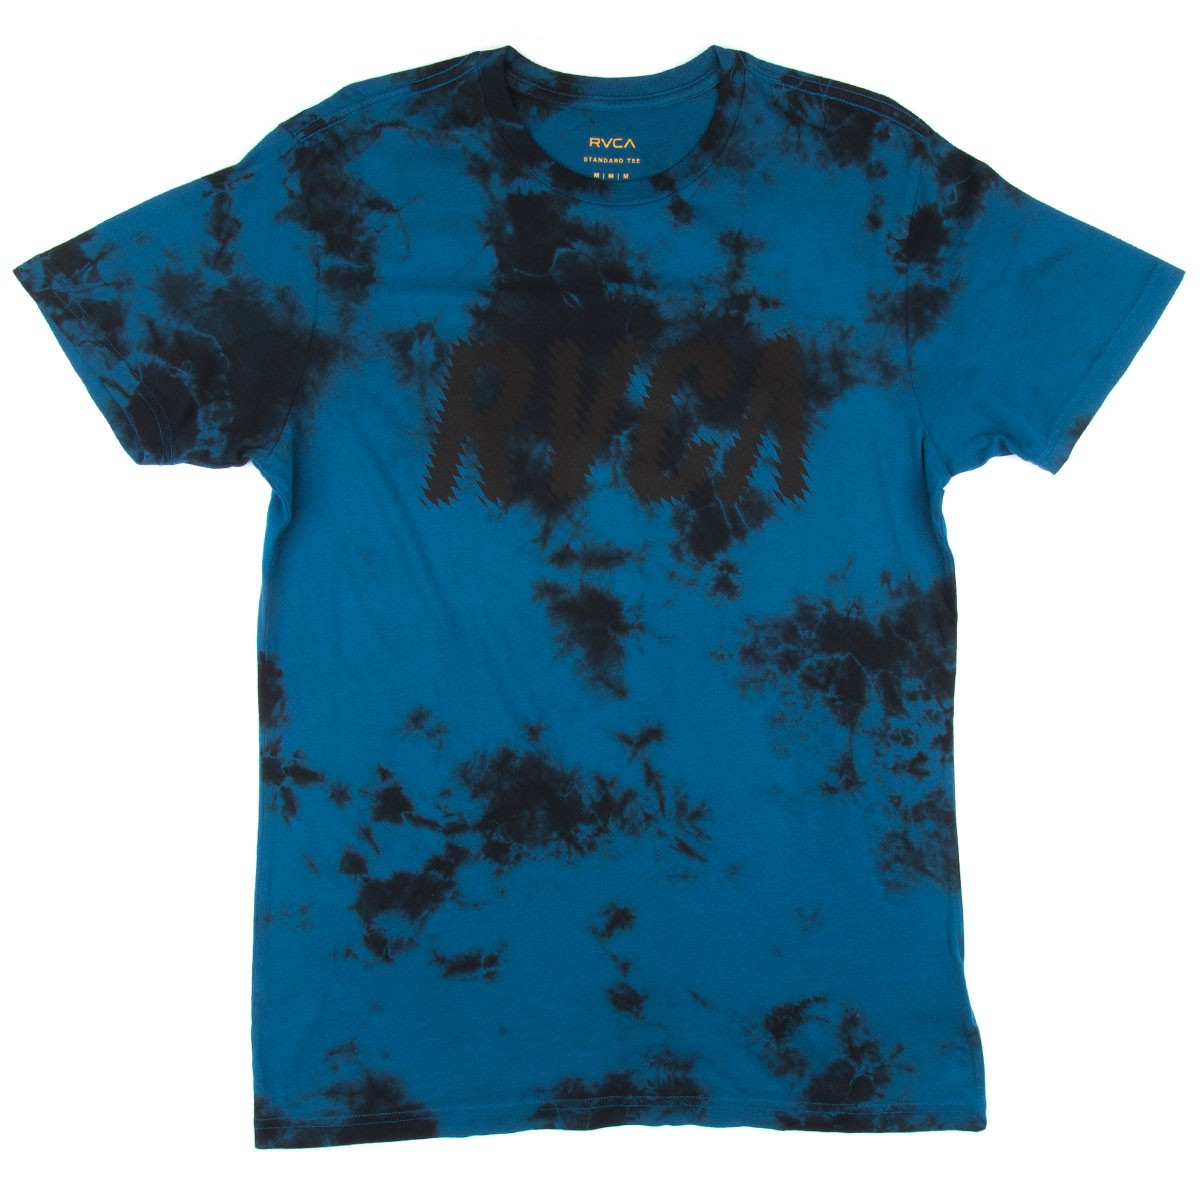 Rvca jagged rvca t shirt french blue for French blue t shirt